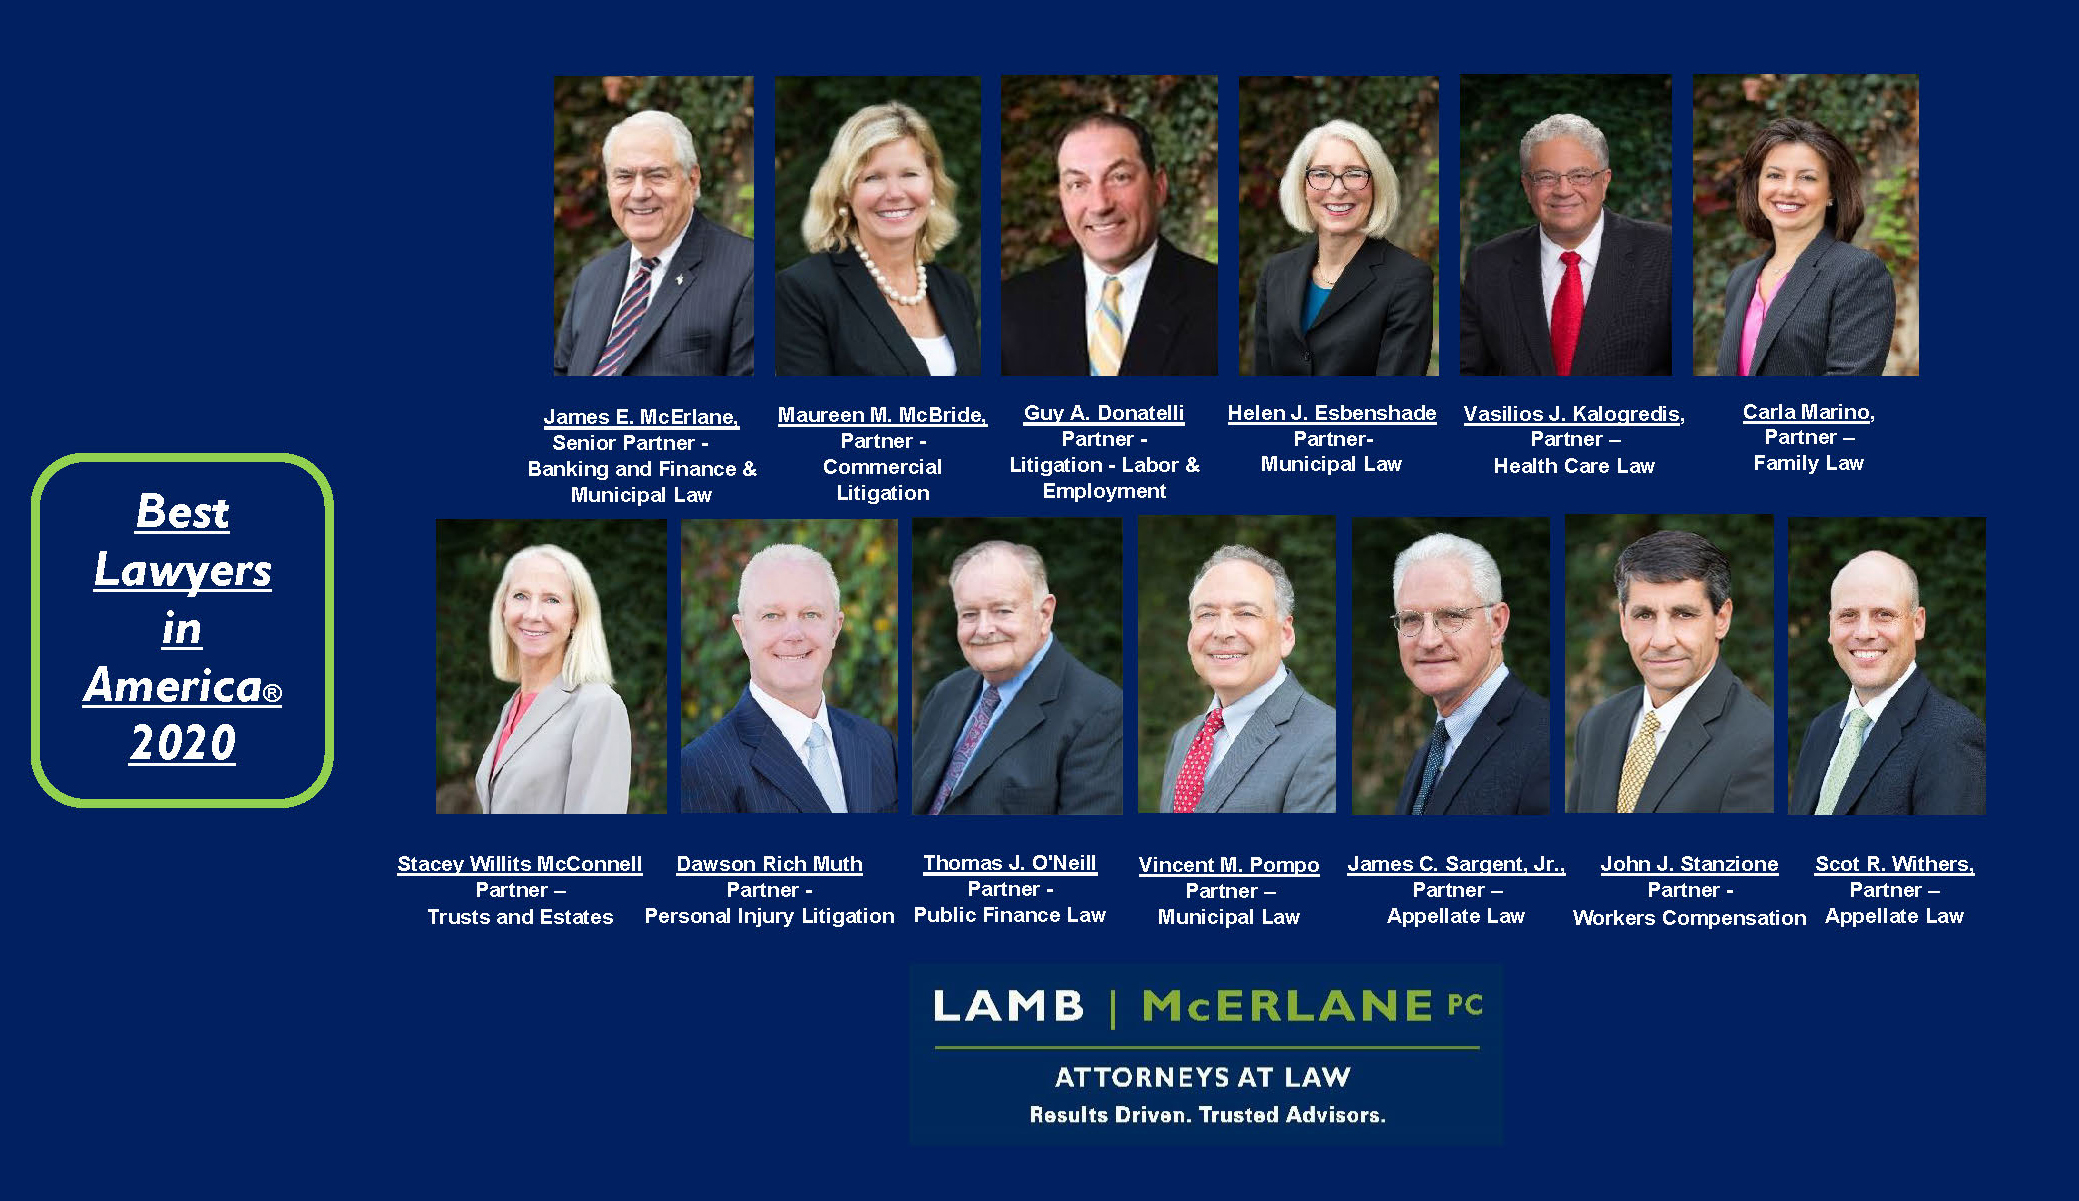 Thirteen Lamb McErlane Attorneys Recognized as Best Lawyers in America